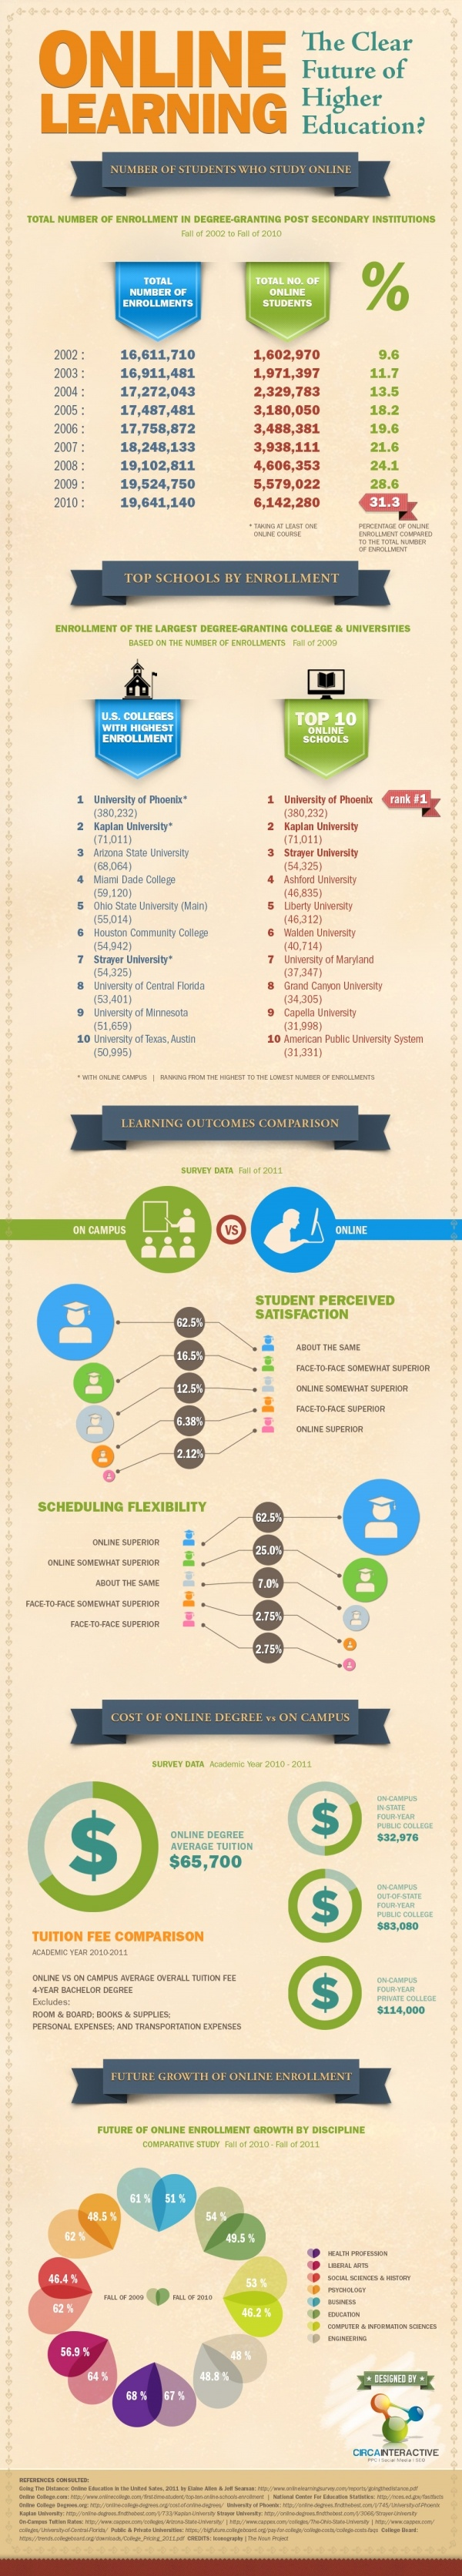 [Infographic] Online Learning   The Clear Future Of Higher Education?    Higher Ed Marketing Journal